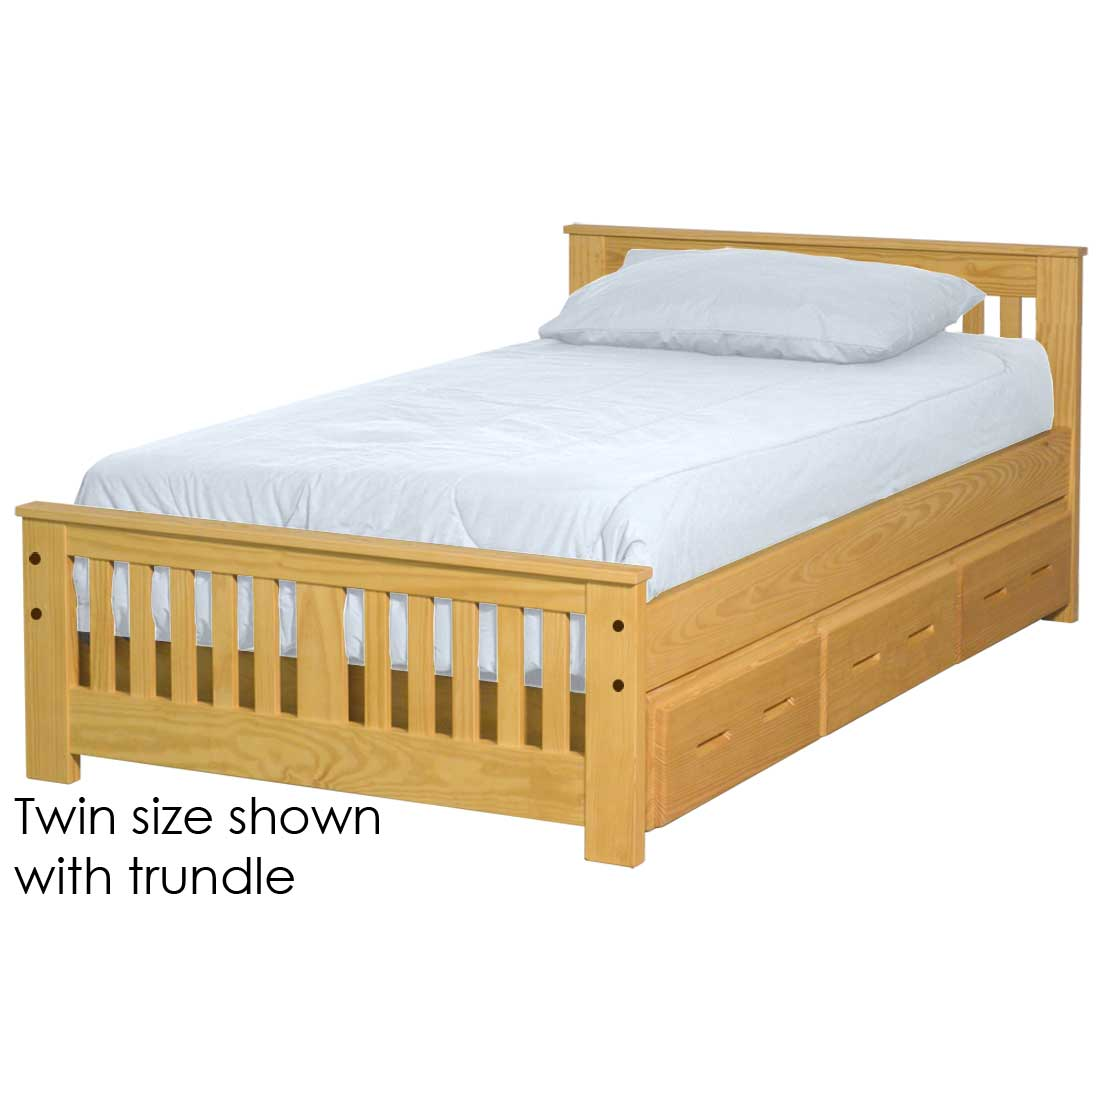 Picture of: Shaker Bed 29in Headboard 18in Footboard Queen Size Crate Designs Furniture